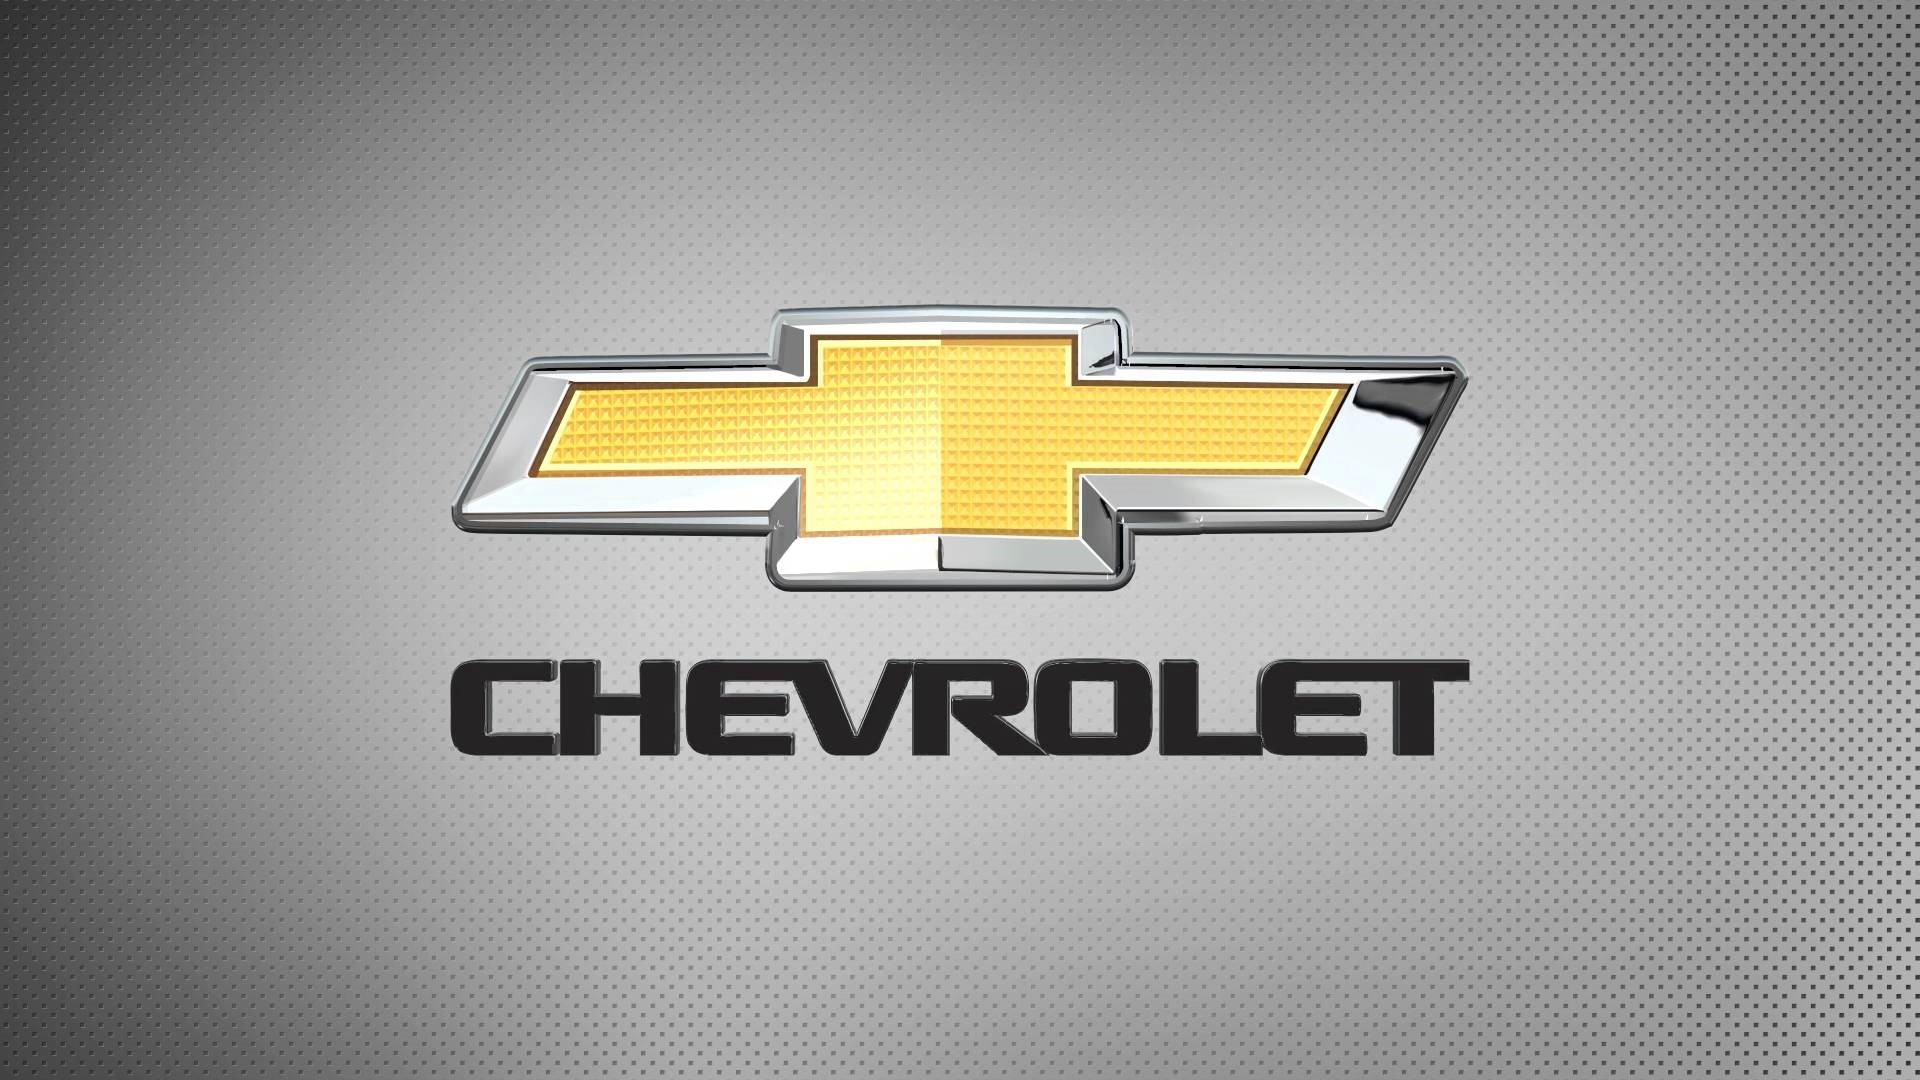 Chevy Bowtie Wallpaper 1777230 Hd Wallpaper Backgrounds Download